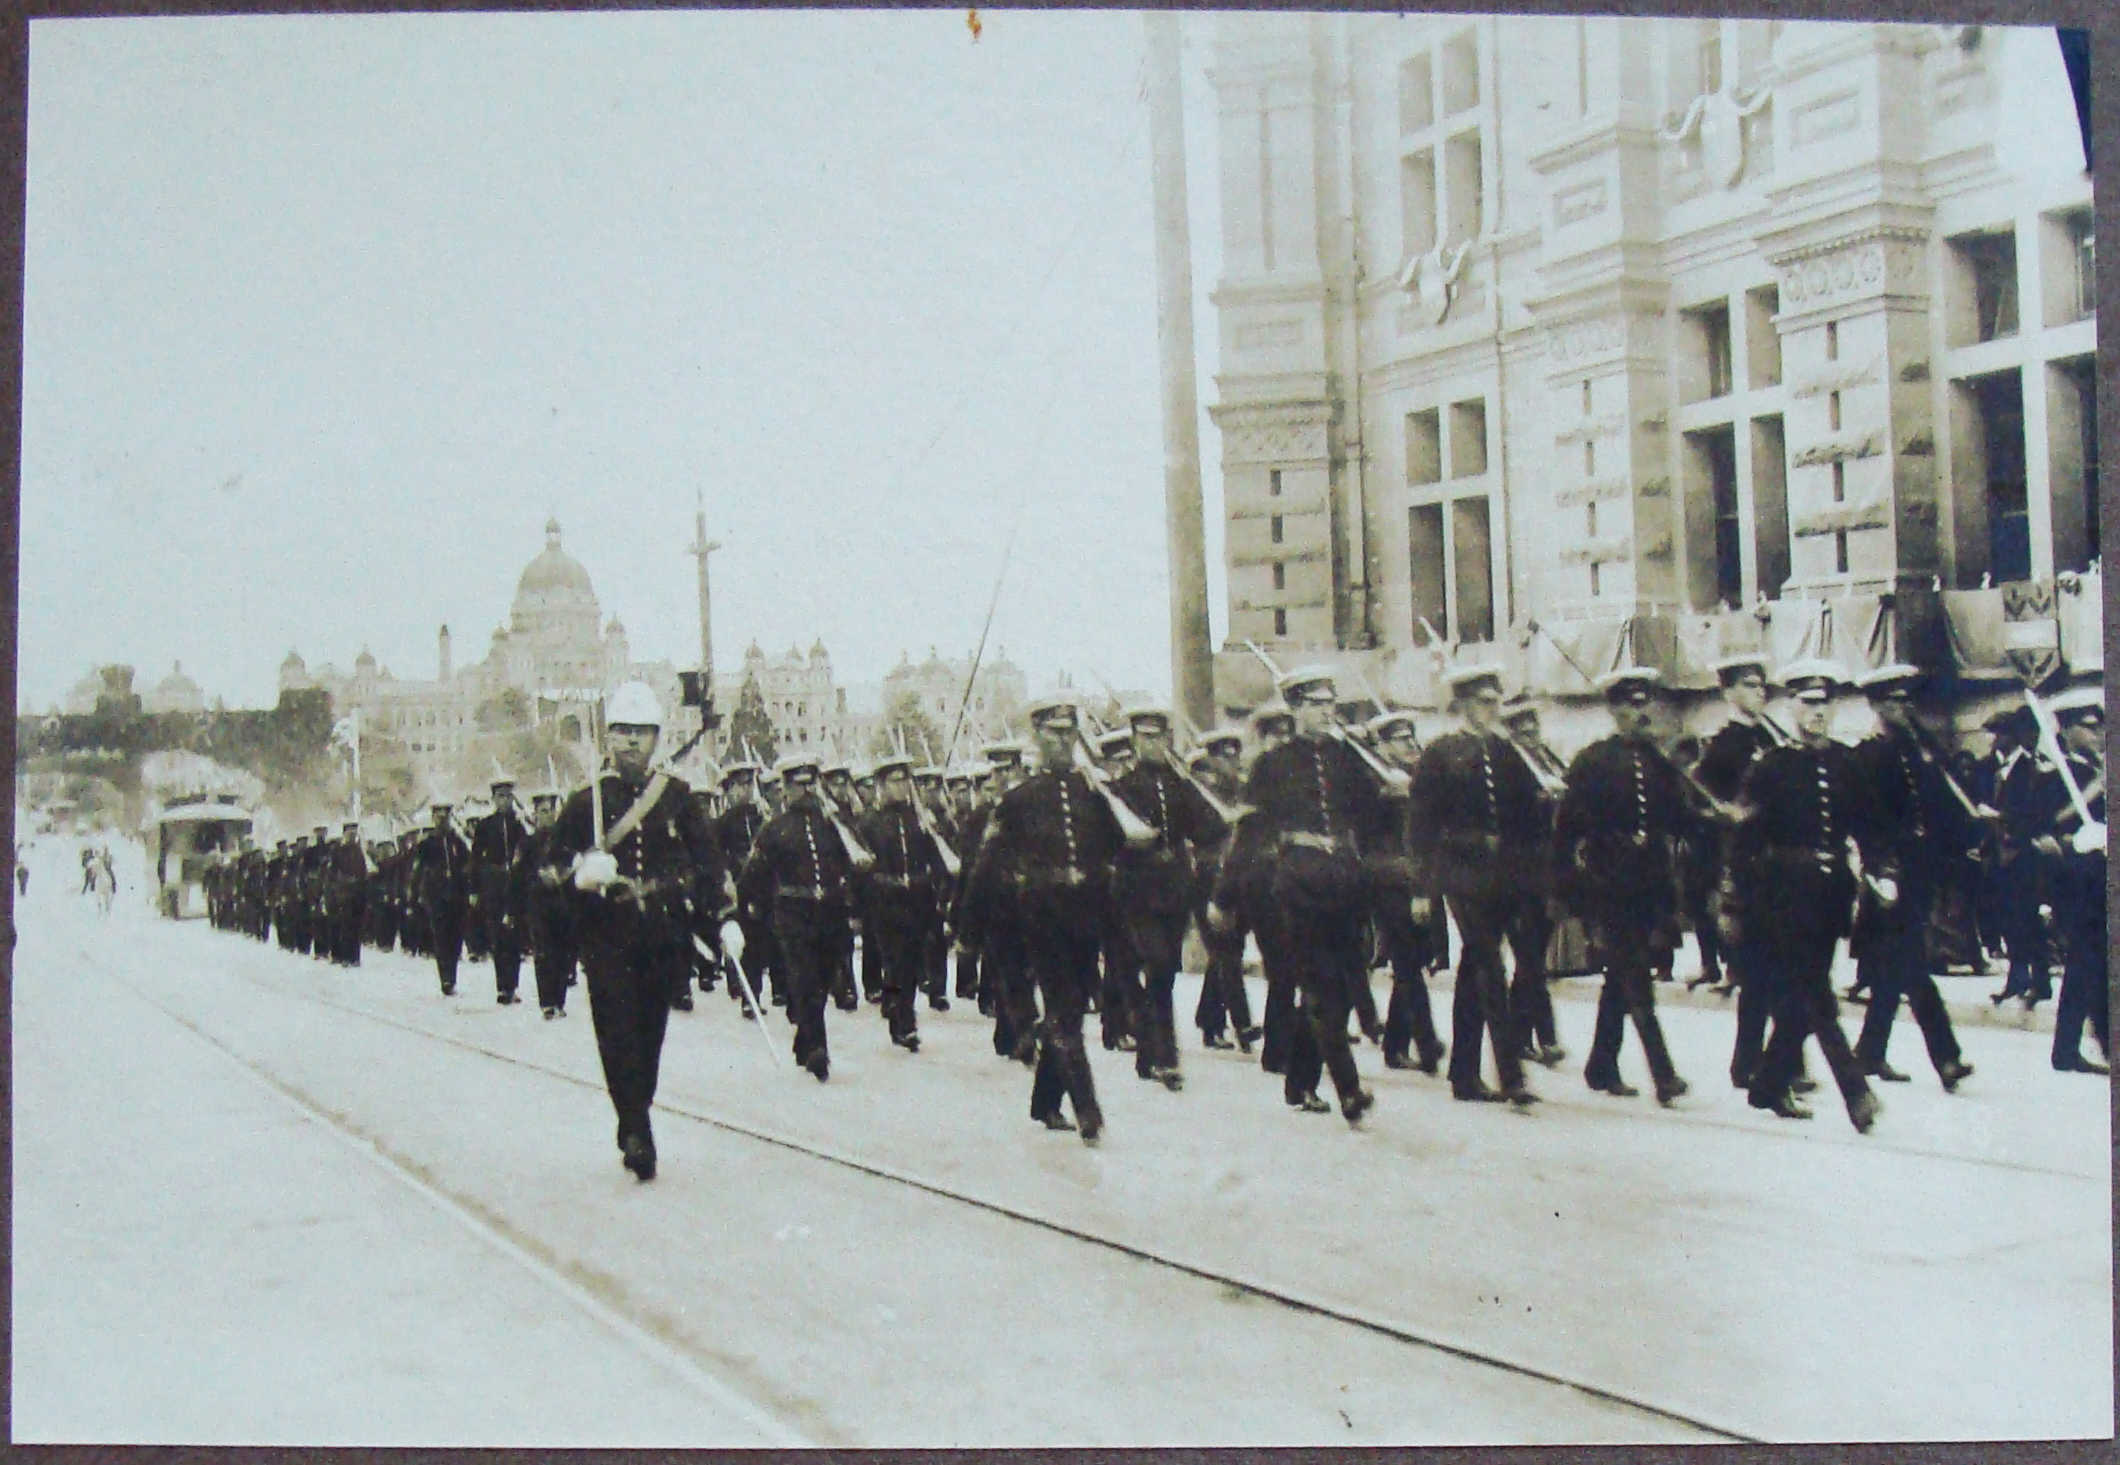 The 5th Regiment on Parade